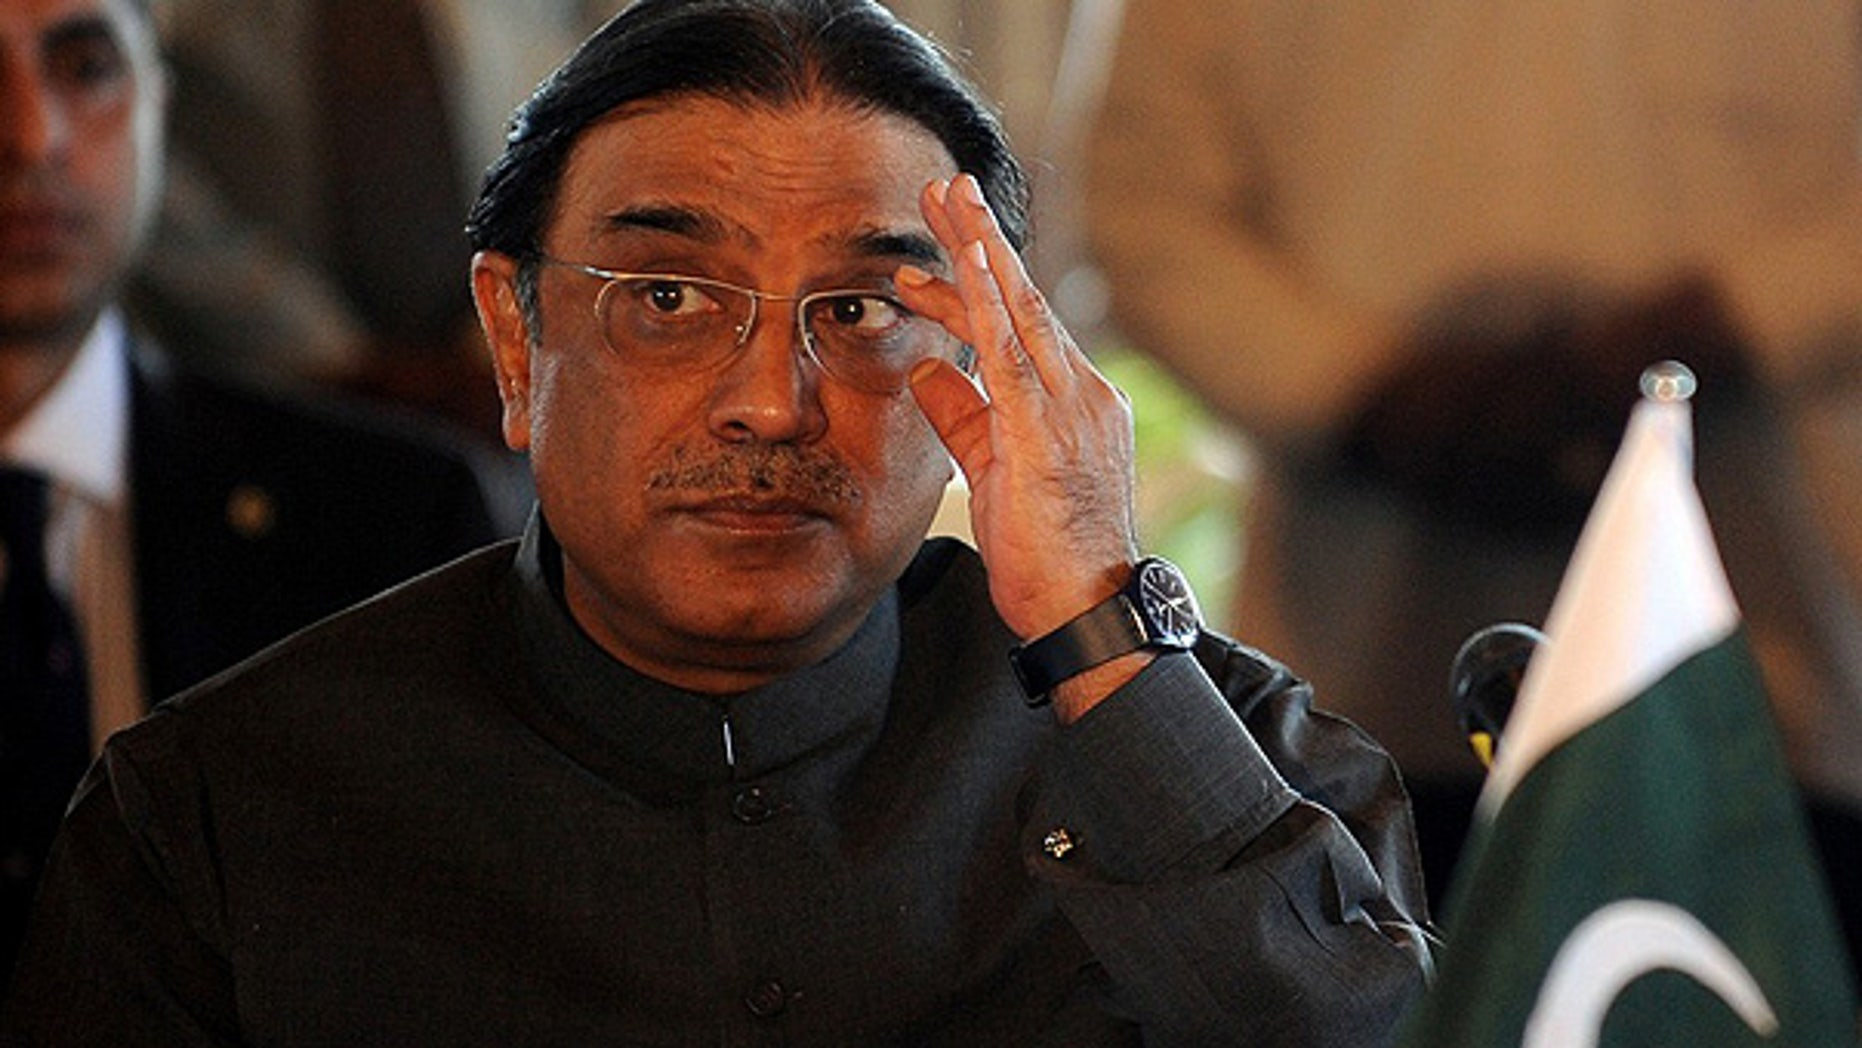 Nov. 29: Pakistan's President Asif Ali Zardari visits Sri Lanka in a bid to boost trade and security cooperation.